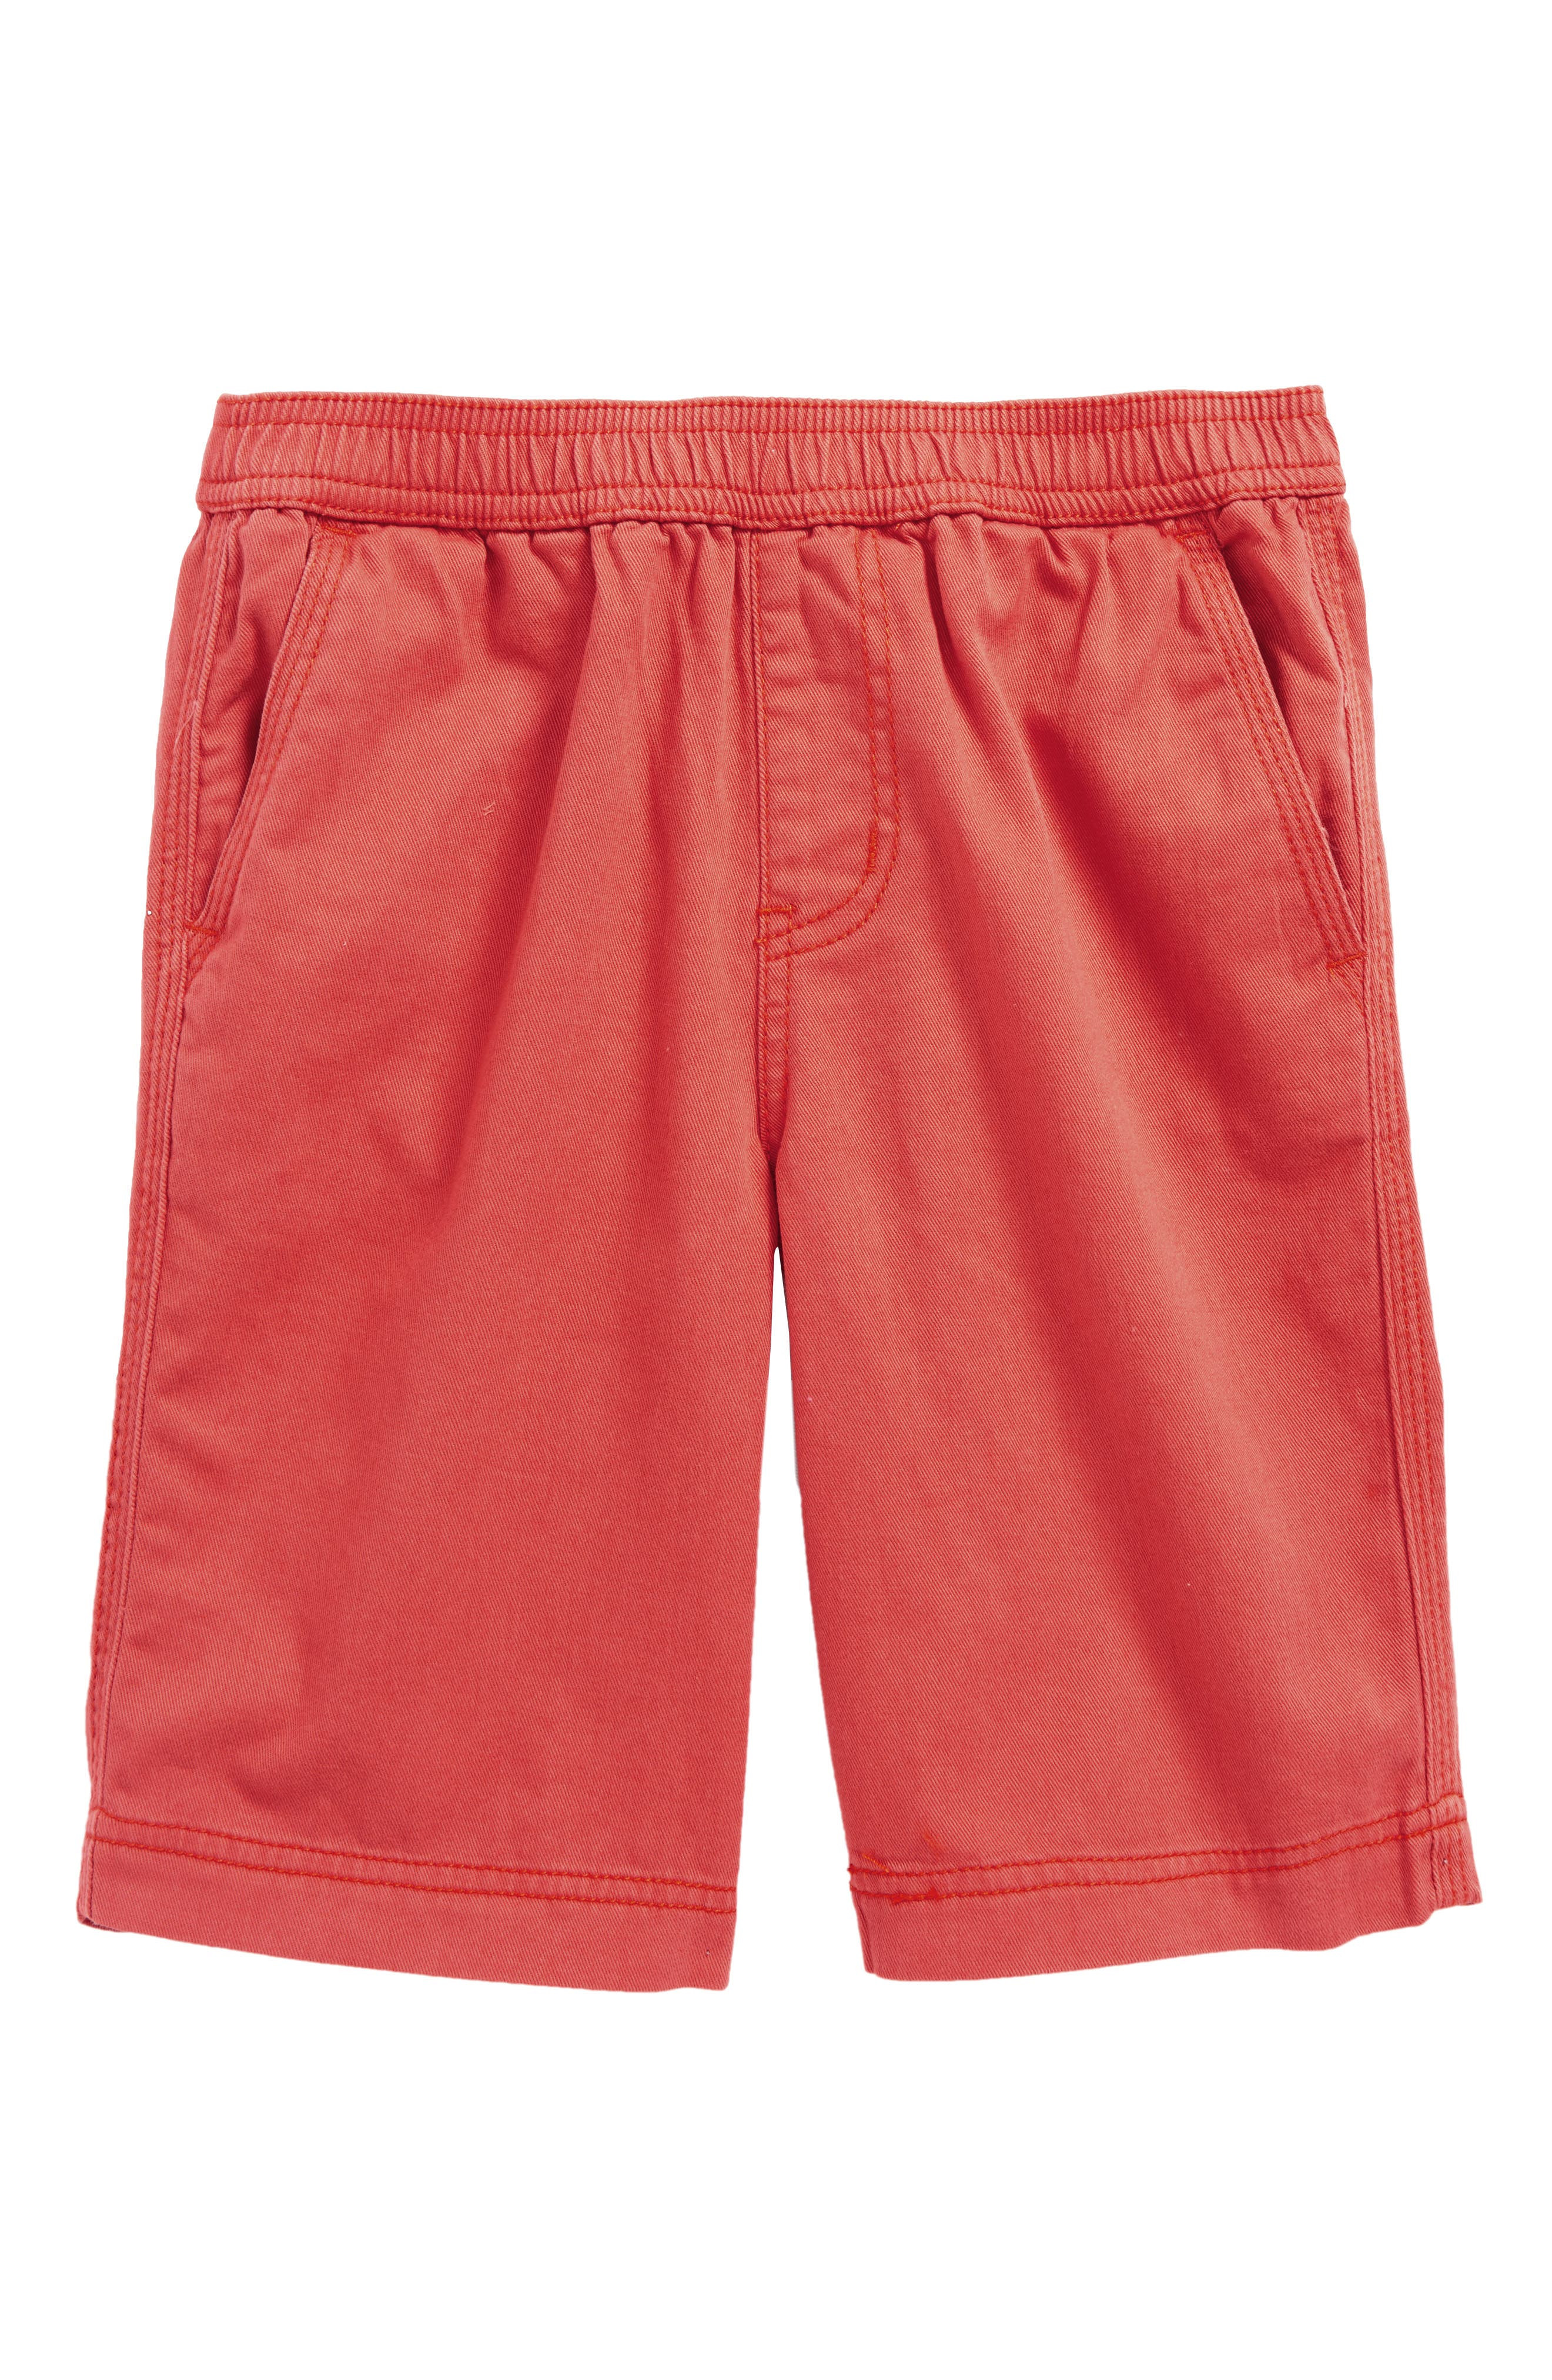 Easy Does It Twill Shorts,                         Main,                         color, Red Dressy Plaid